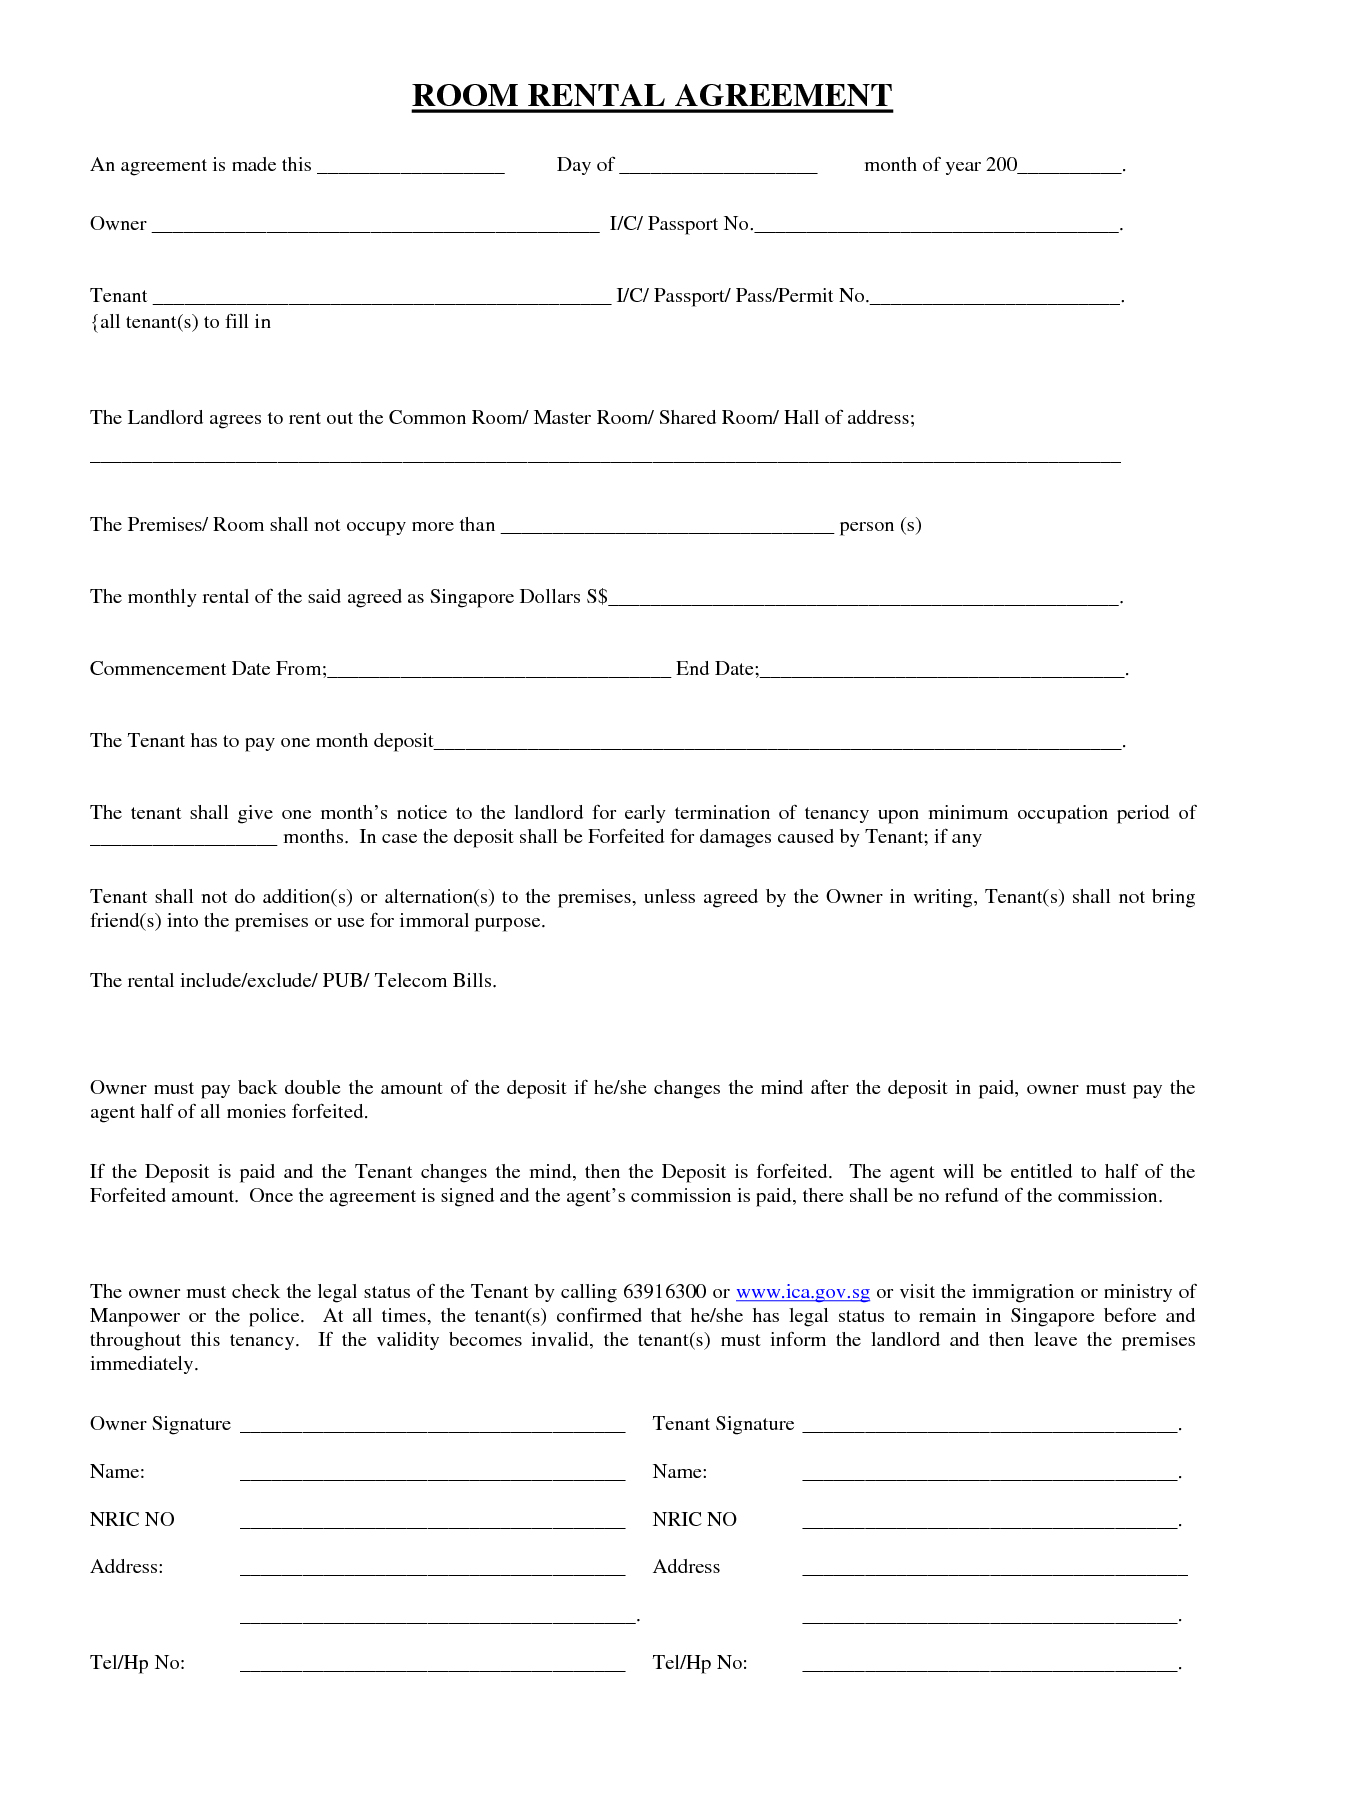 Simple House Lease Agreement  Simple Room Rental Agreement Throughout Simple House Rental Agreement Template